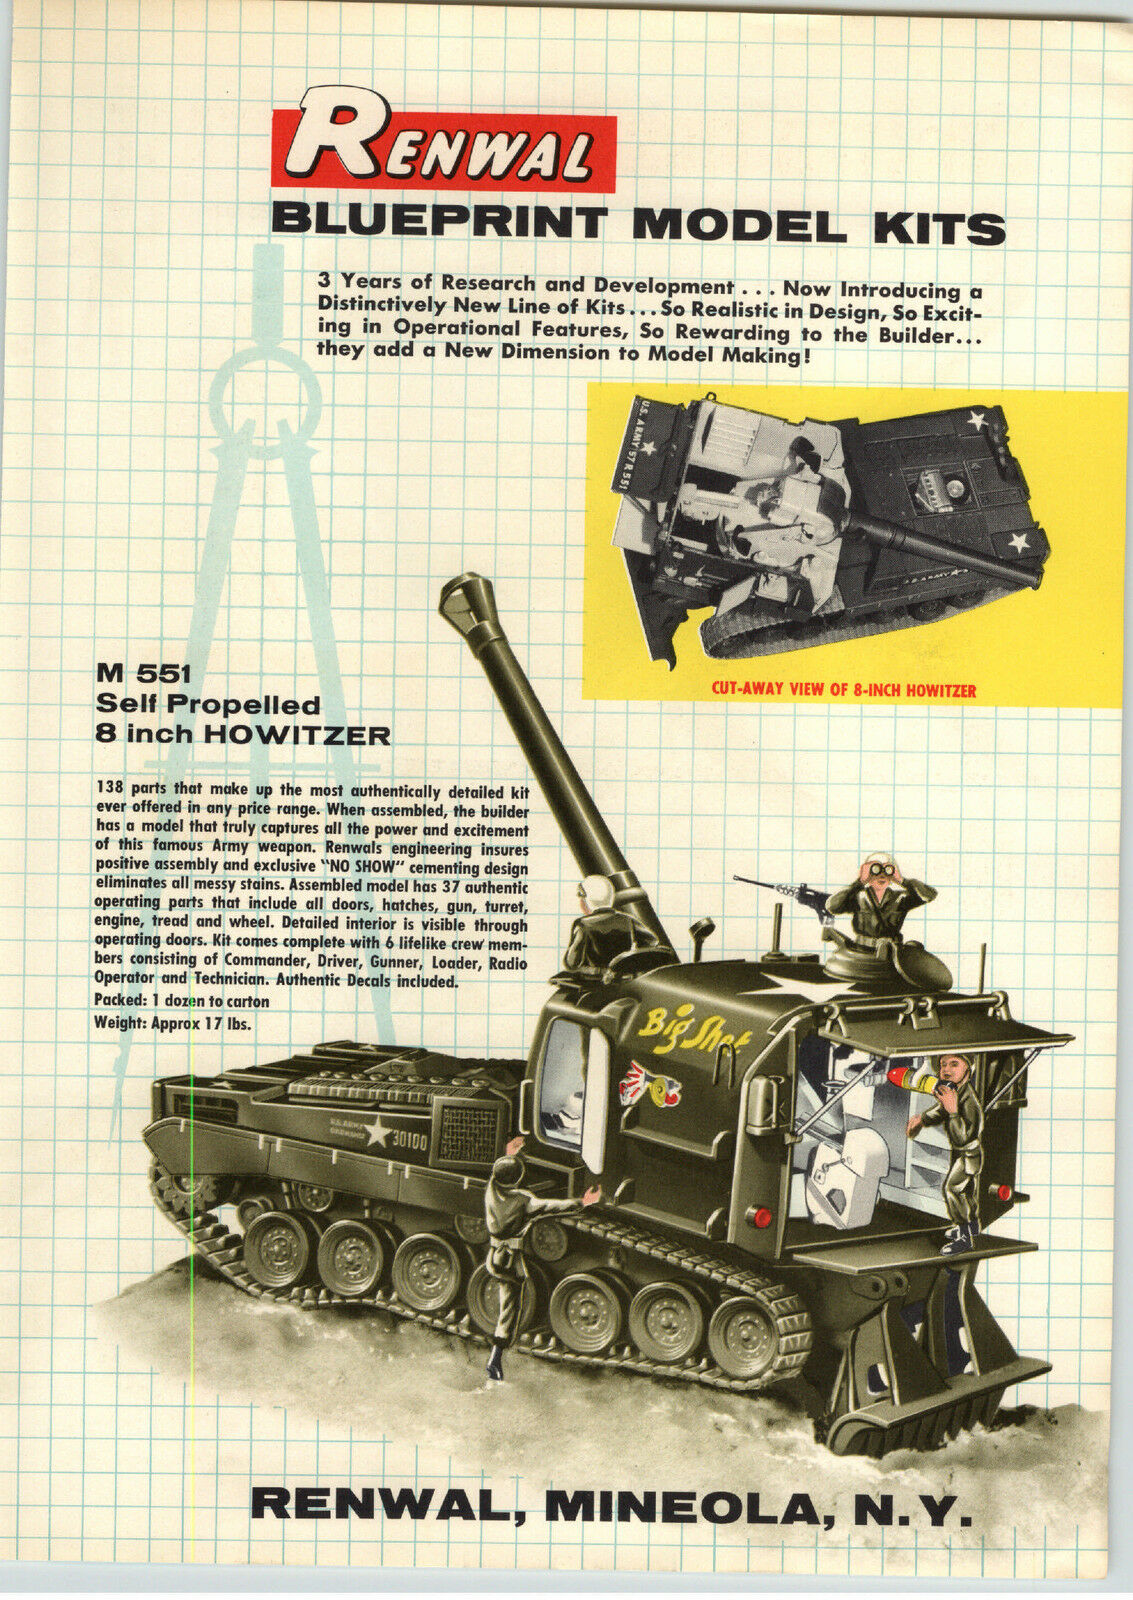 1957 paper ad 4 pg renwal blueprint model kits big shot howitzer 1 of 4only 1 available malvernweather Image collections